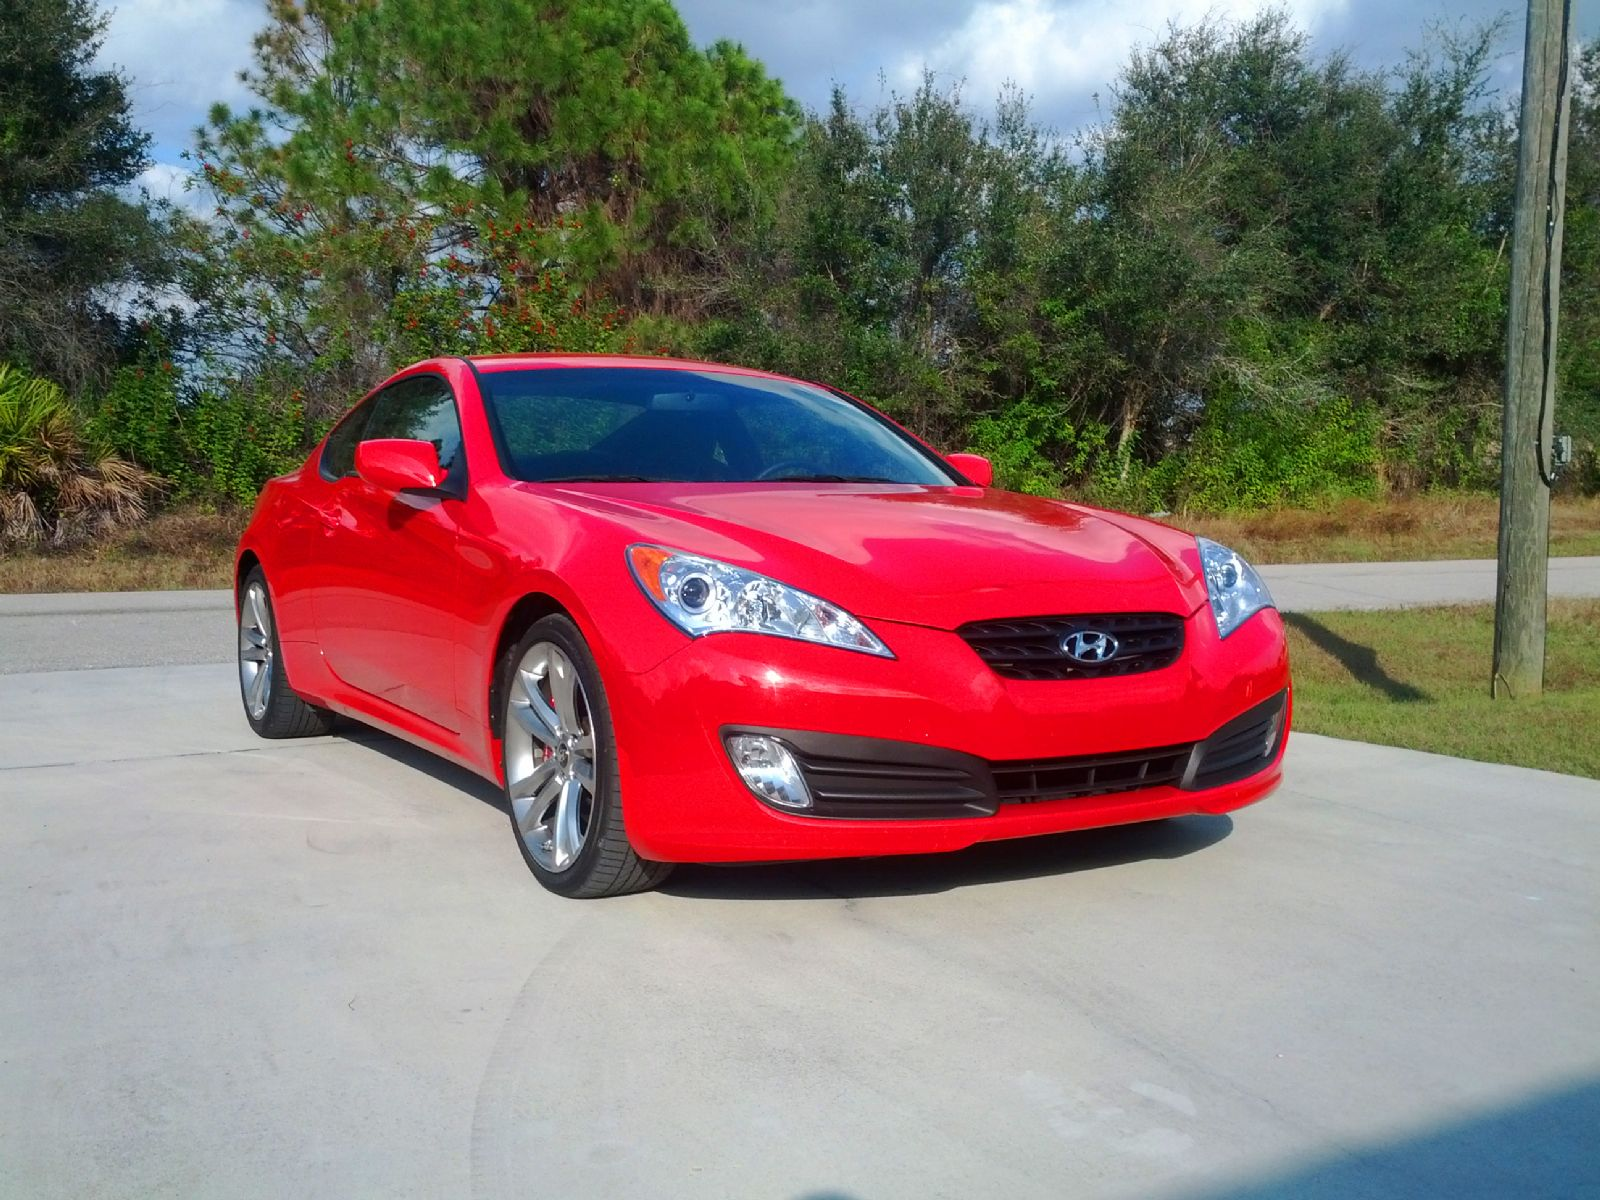 2011 Hyundai Genesis Coupe R Spec Genesis Coupe 3 8 R Spec For Sale Fort Myers Florida